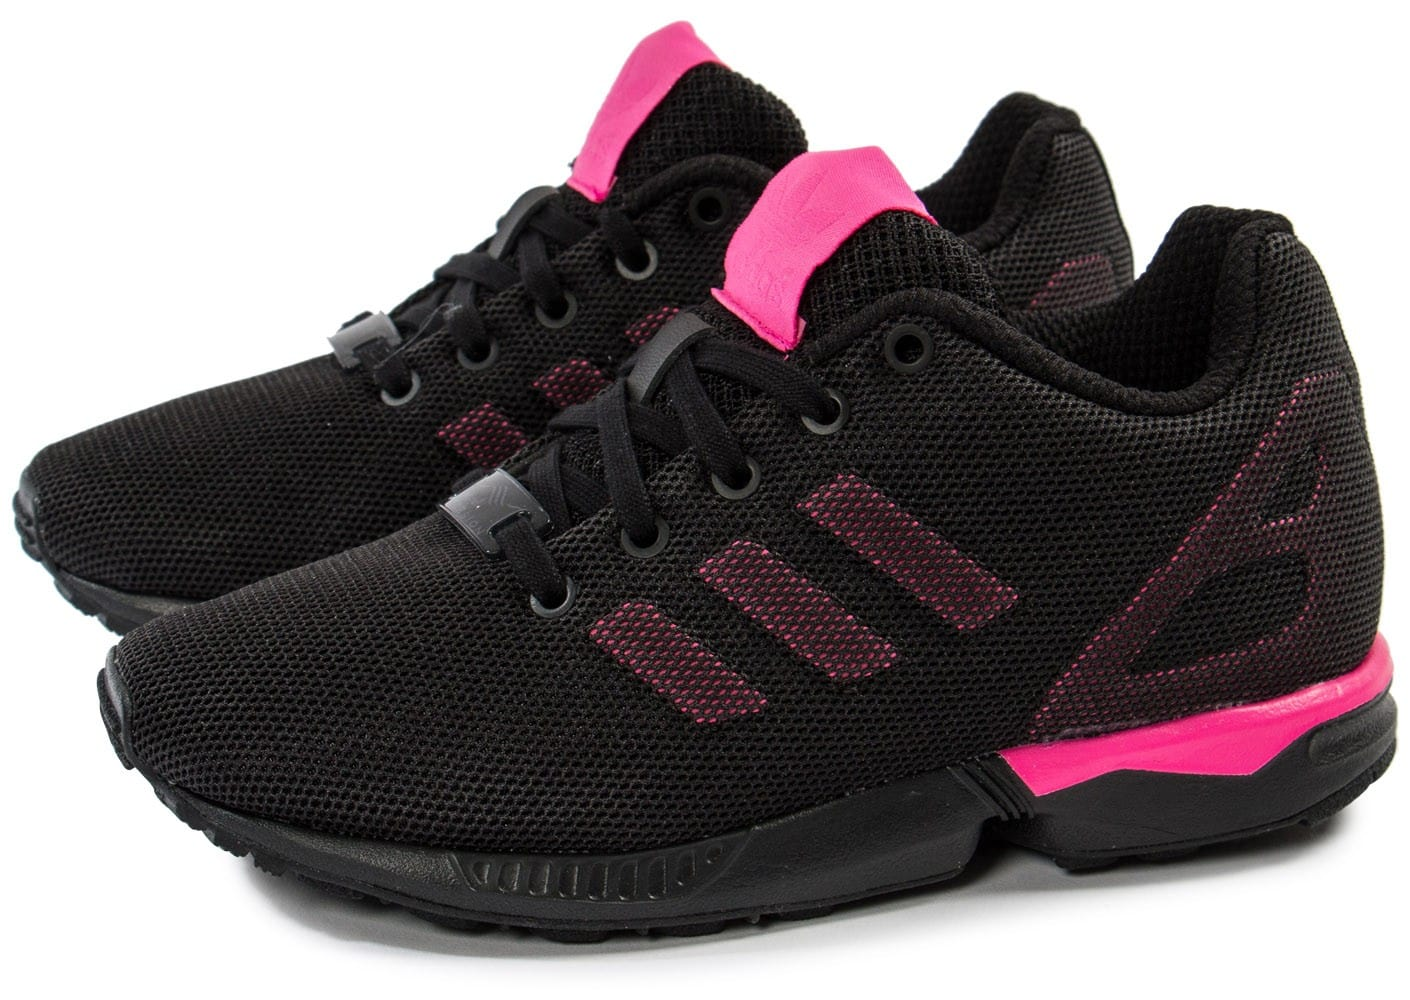 Zx Flux 35 Flash Sales, UP TO 59% OFF